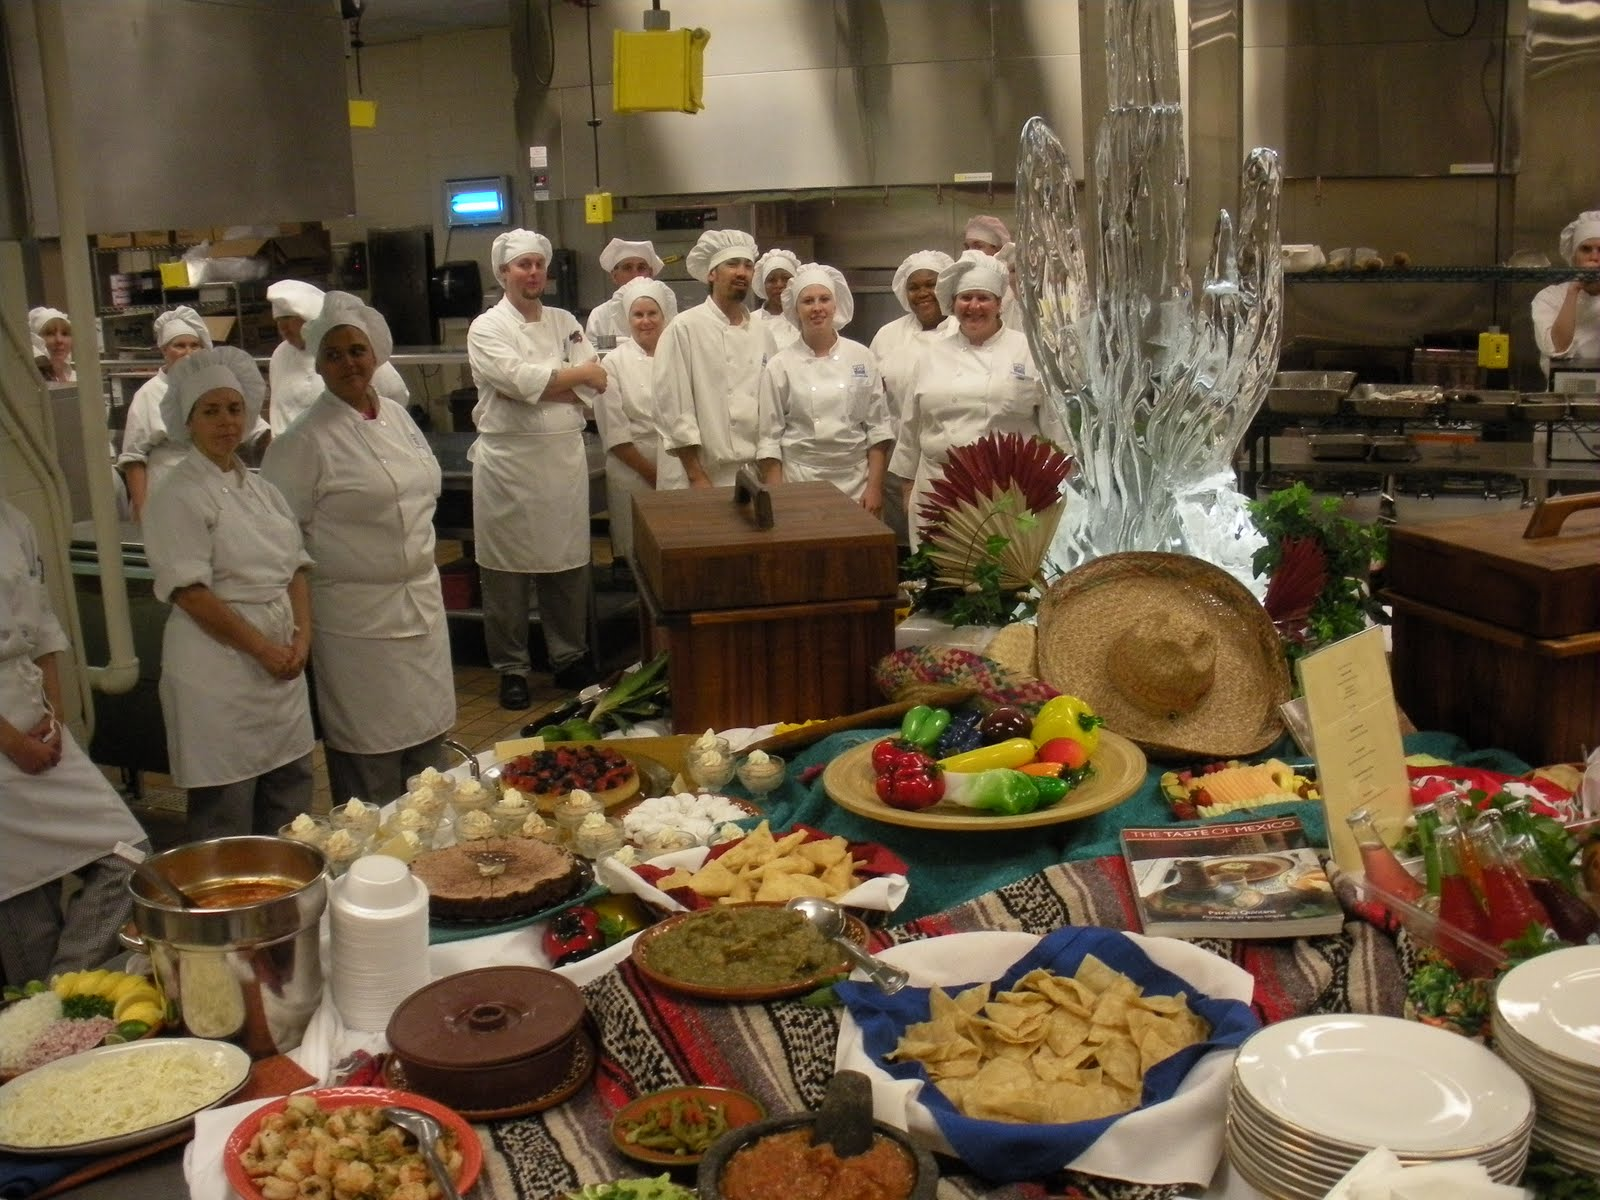 Food Buffet Displays http://hawaiidermatology.com/buffet/buffet-displays-food-presentation-ice-carving-hawaii.htm